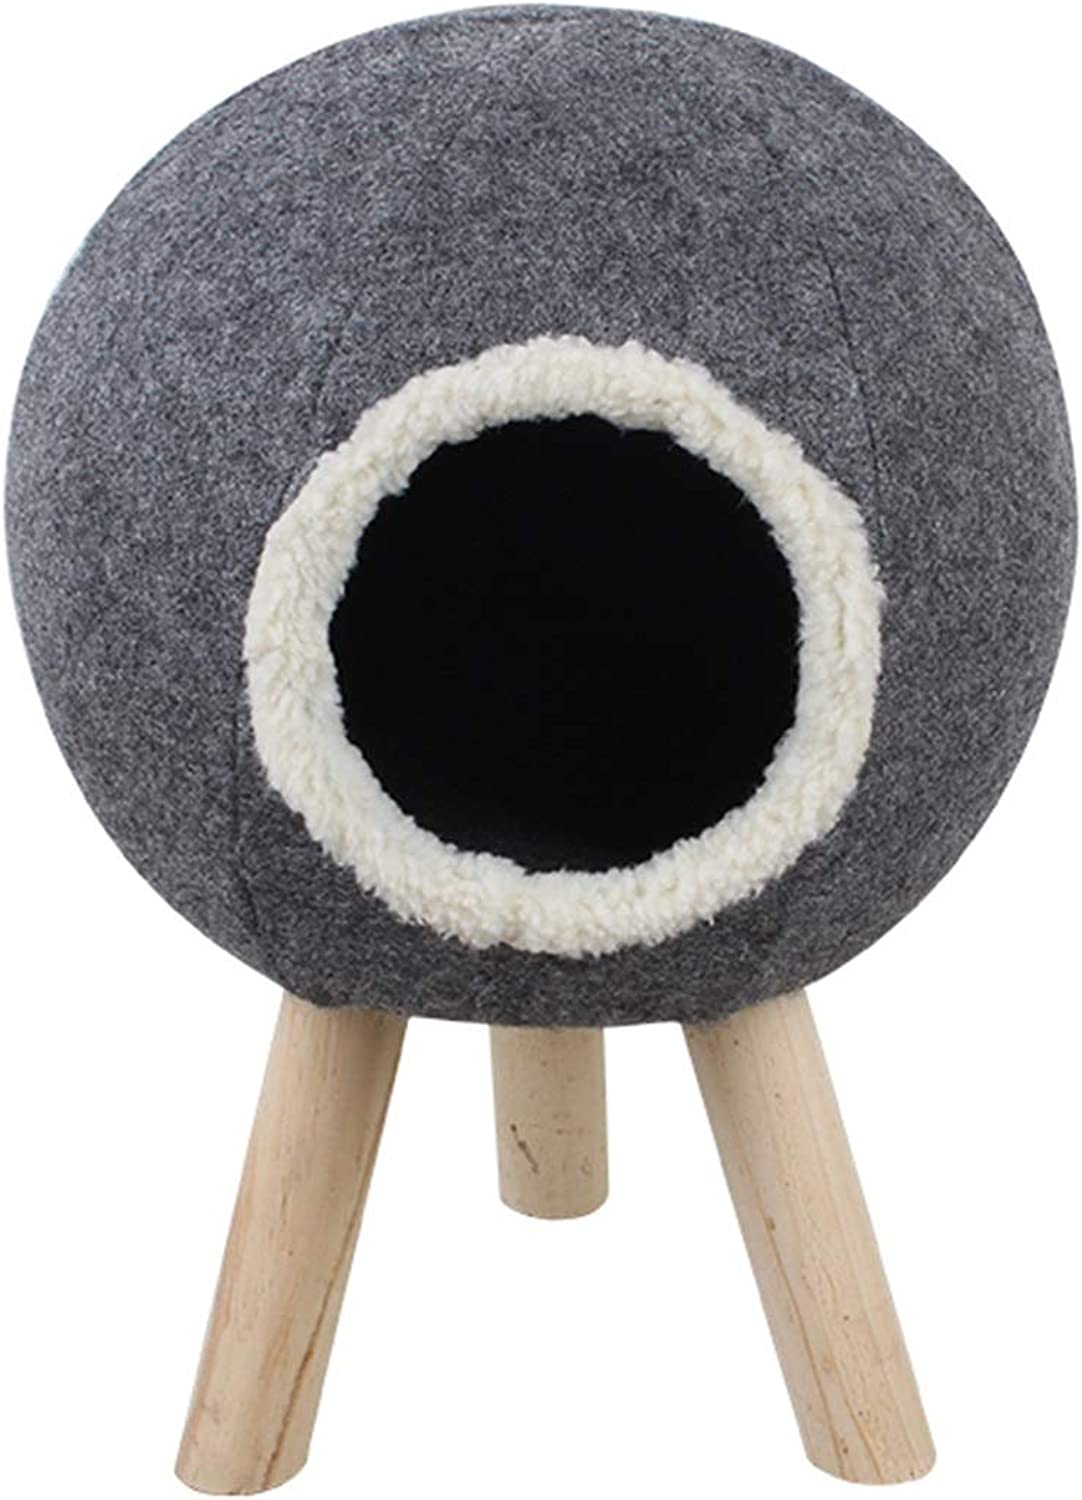 Cat Bed   Cat Play House Condo Furniture - Ideal for Kittens, Cats and Pets, 3 Style (color   B)